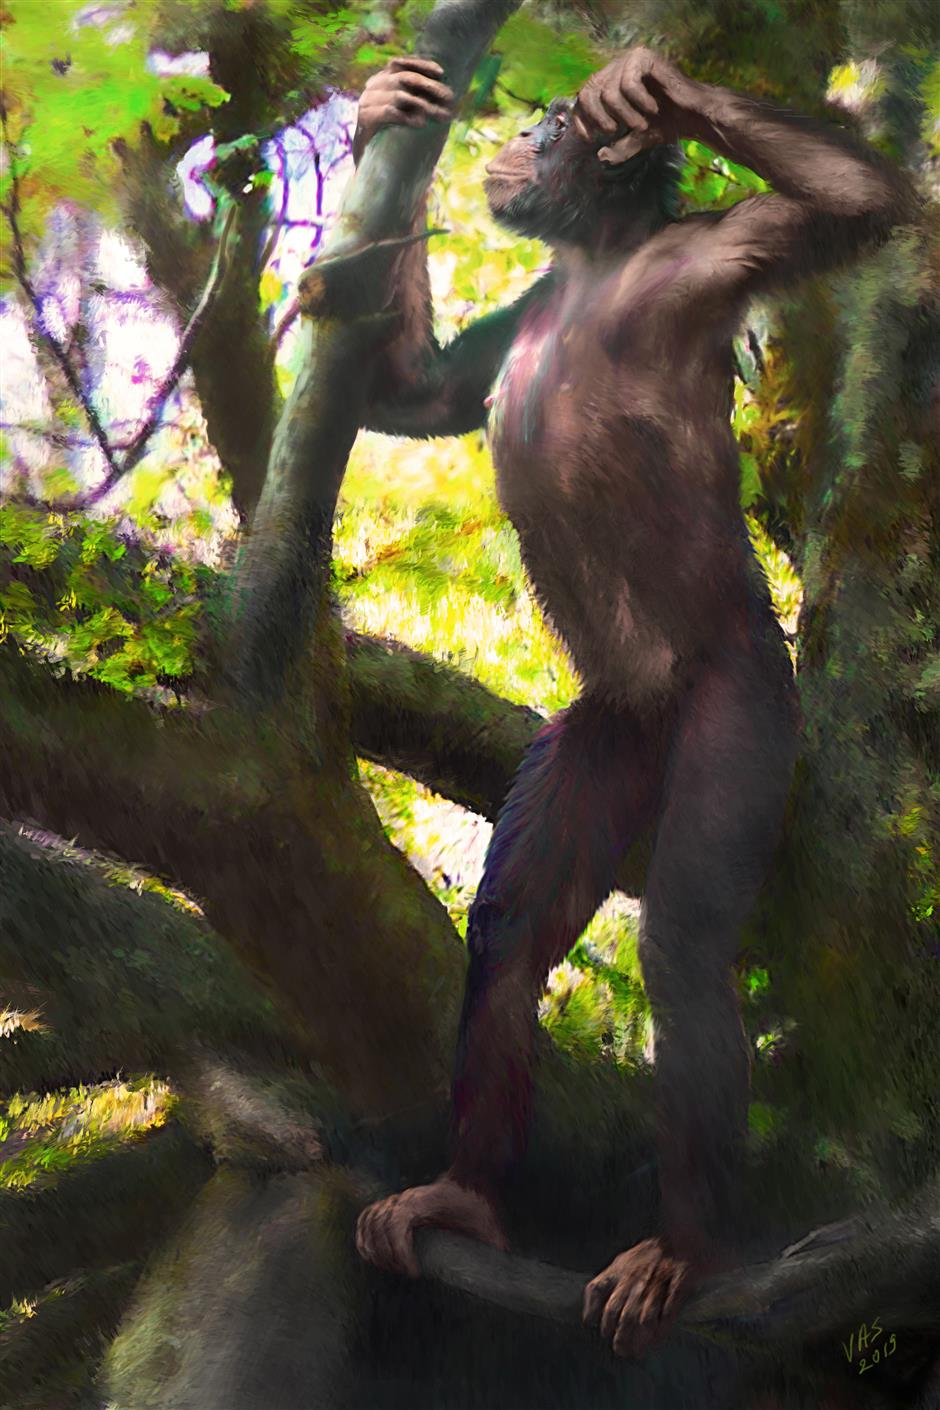 Scientists find oldest upright ape in Germany